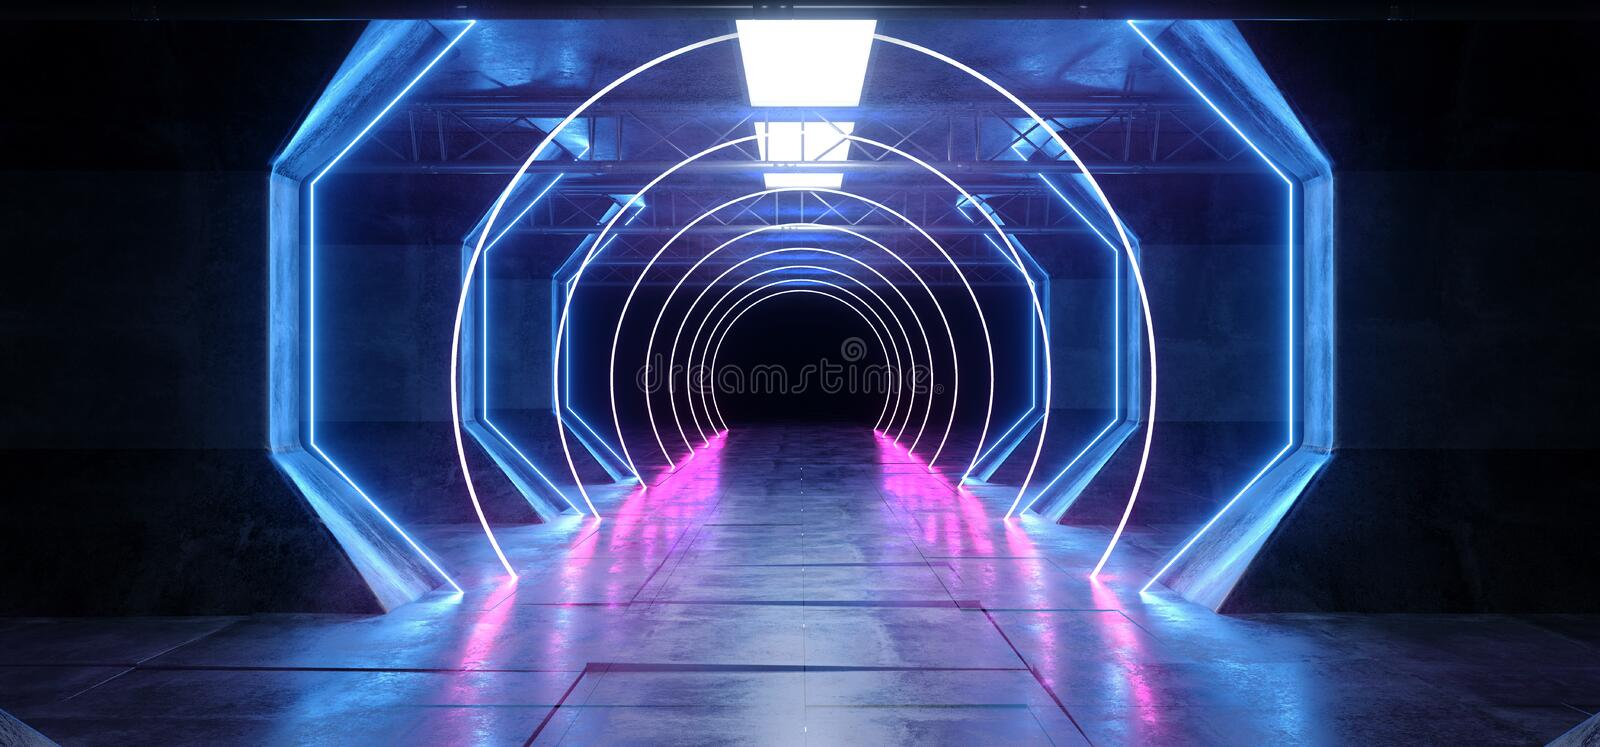 Virtual Reality Cyber Sci Fi Futuristic Neon Glowing Alien Ship Space Tunnel Corridor Glowoing Vibrant Fluorescent Laser Blue stock illustration